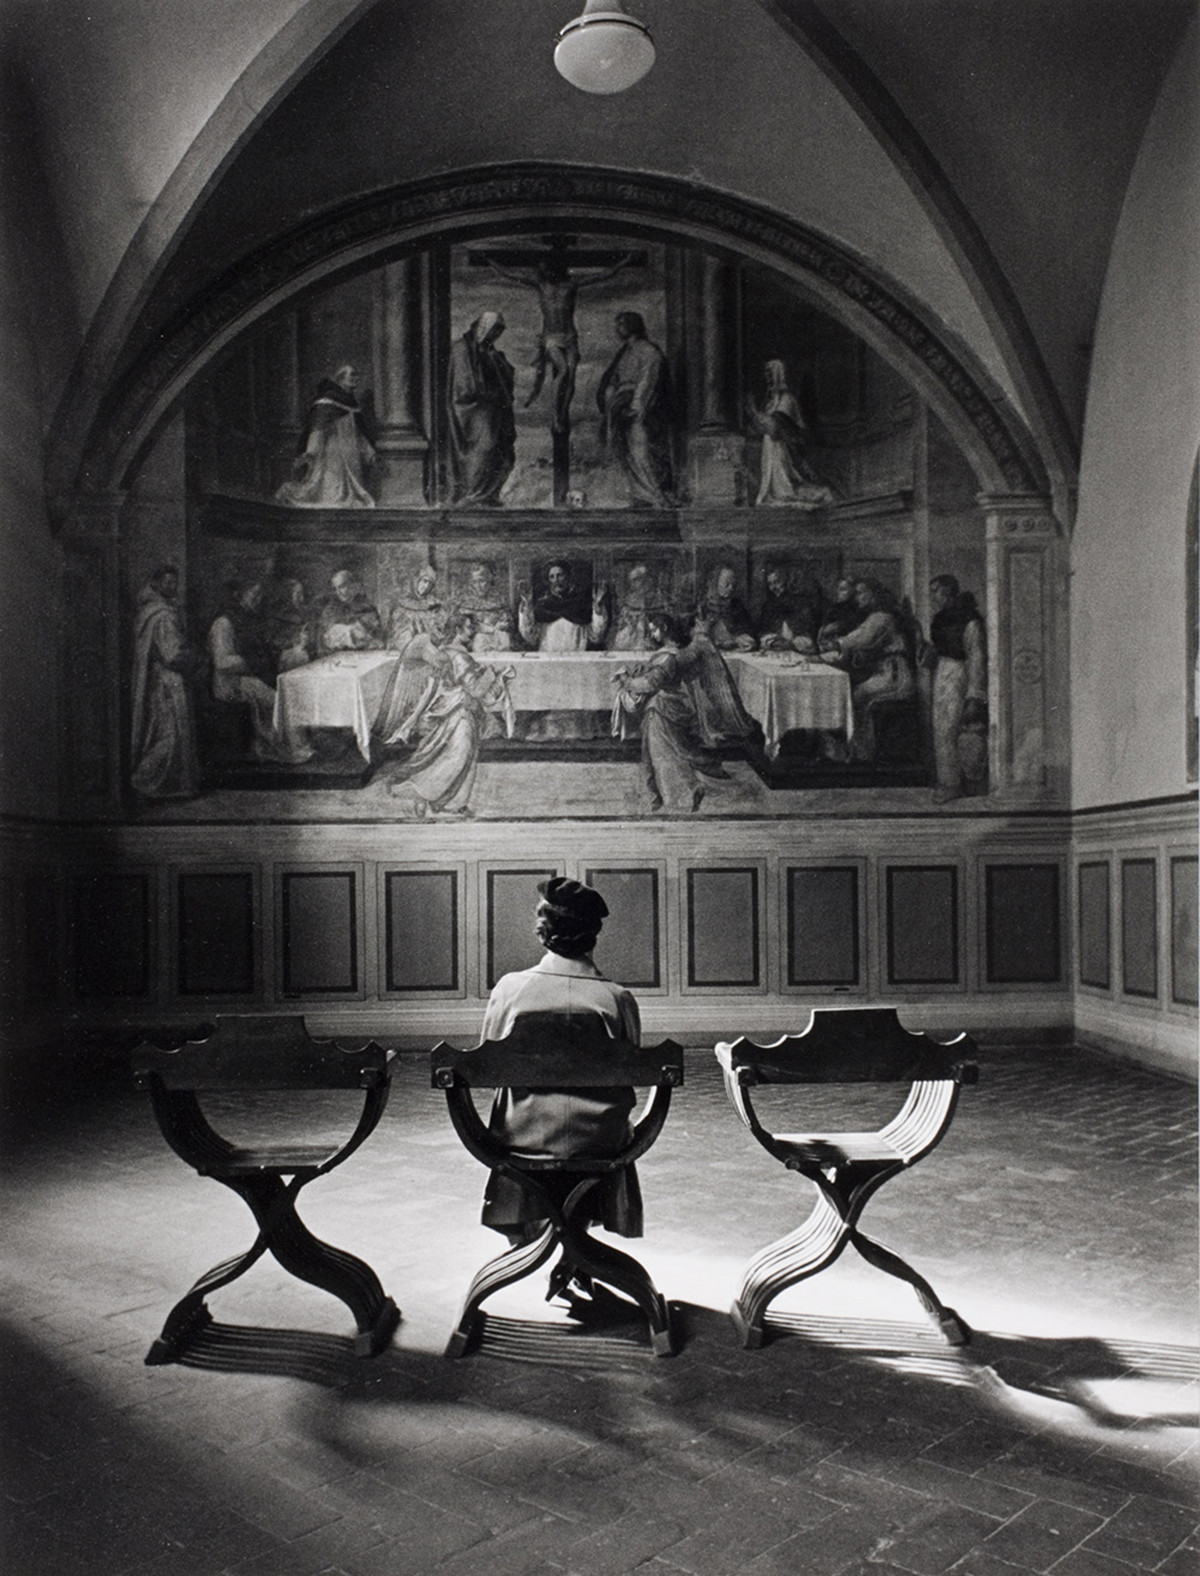 Alfred Eisenstadt photos of A fresco in the Dominican monastery of San Marco called Providence. It was created by Giovanni Antonio Sogliani in 1536. Italy, Florence, 1935.